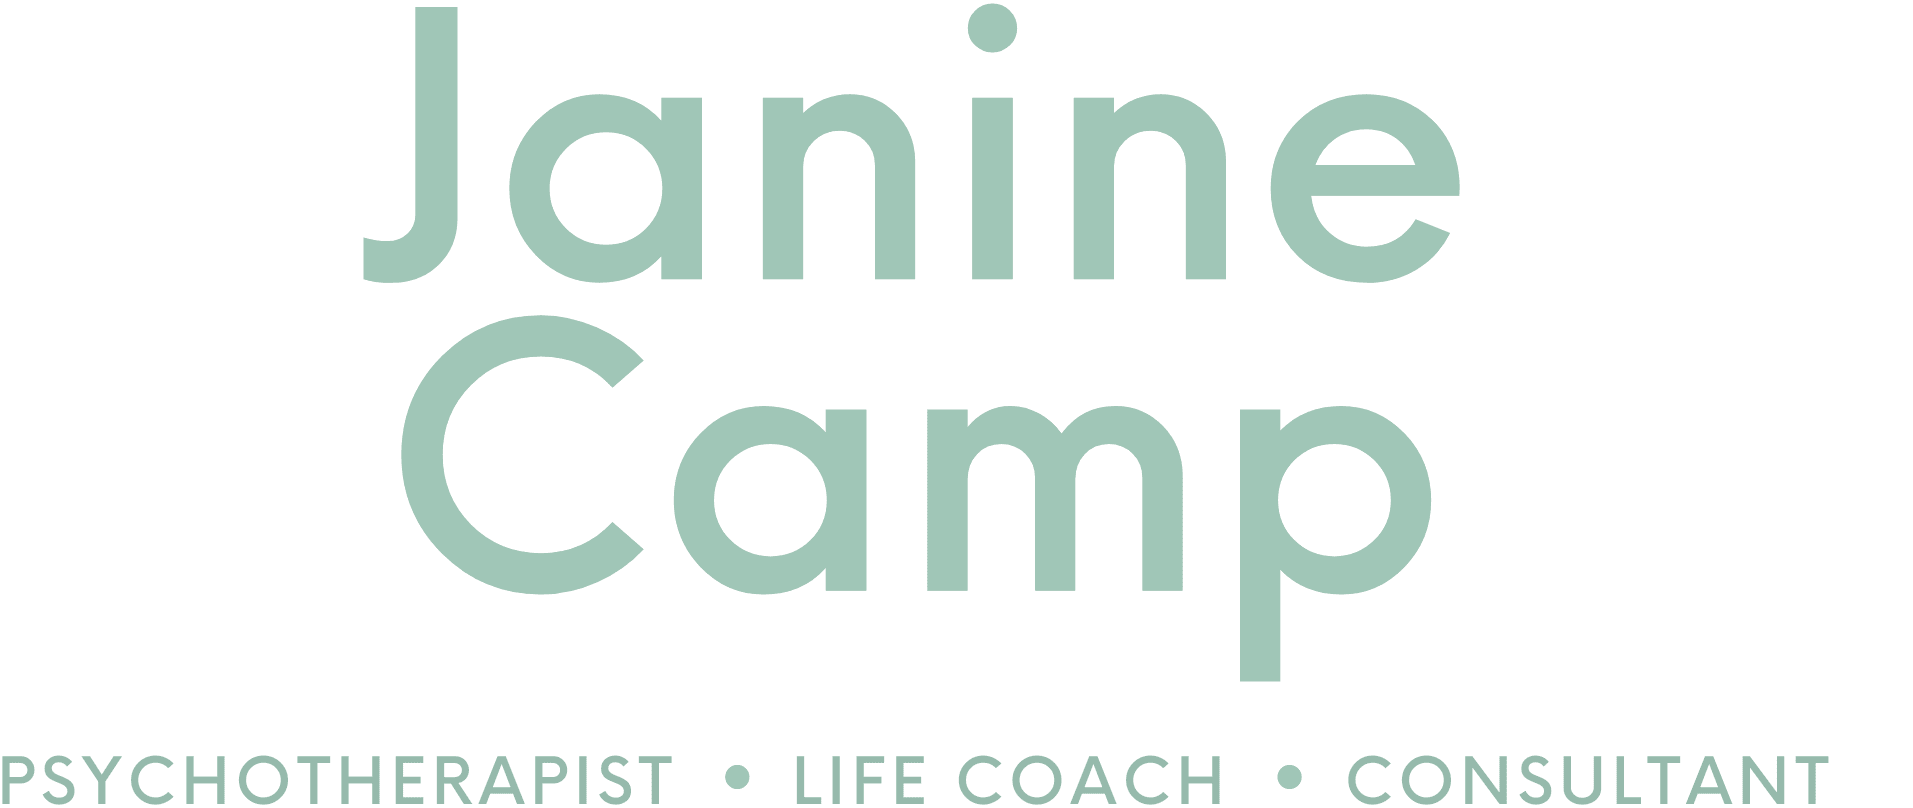 Psychotherapist (psychotherapy), life coach, consultant in London, UK – Janine Camp MBACP